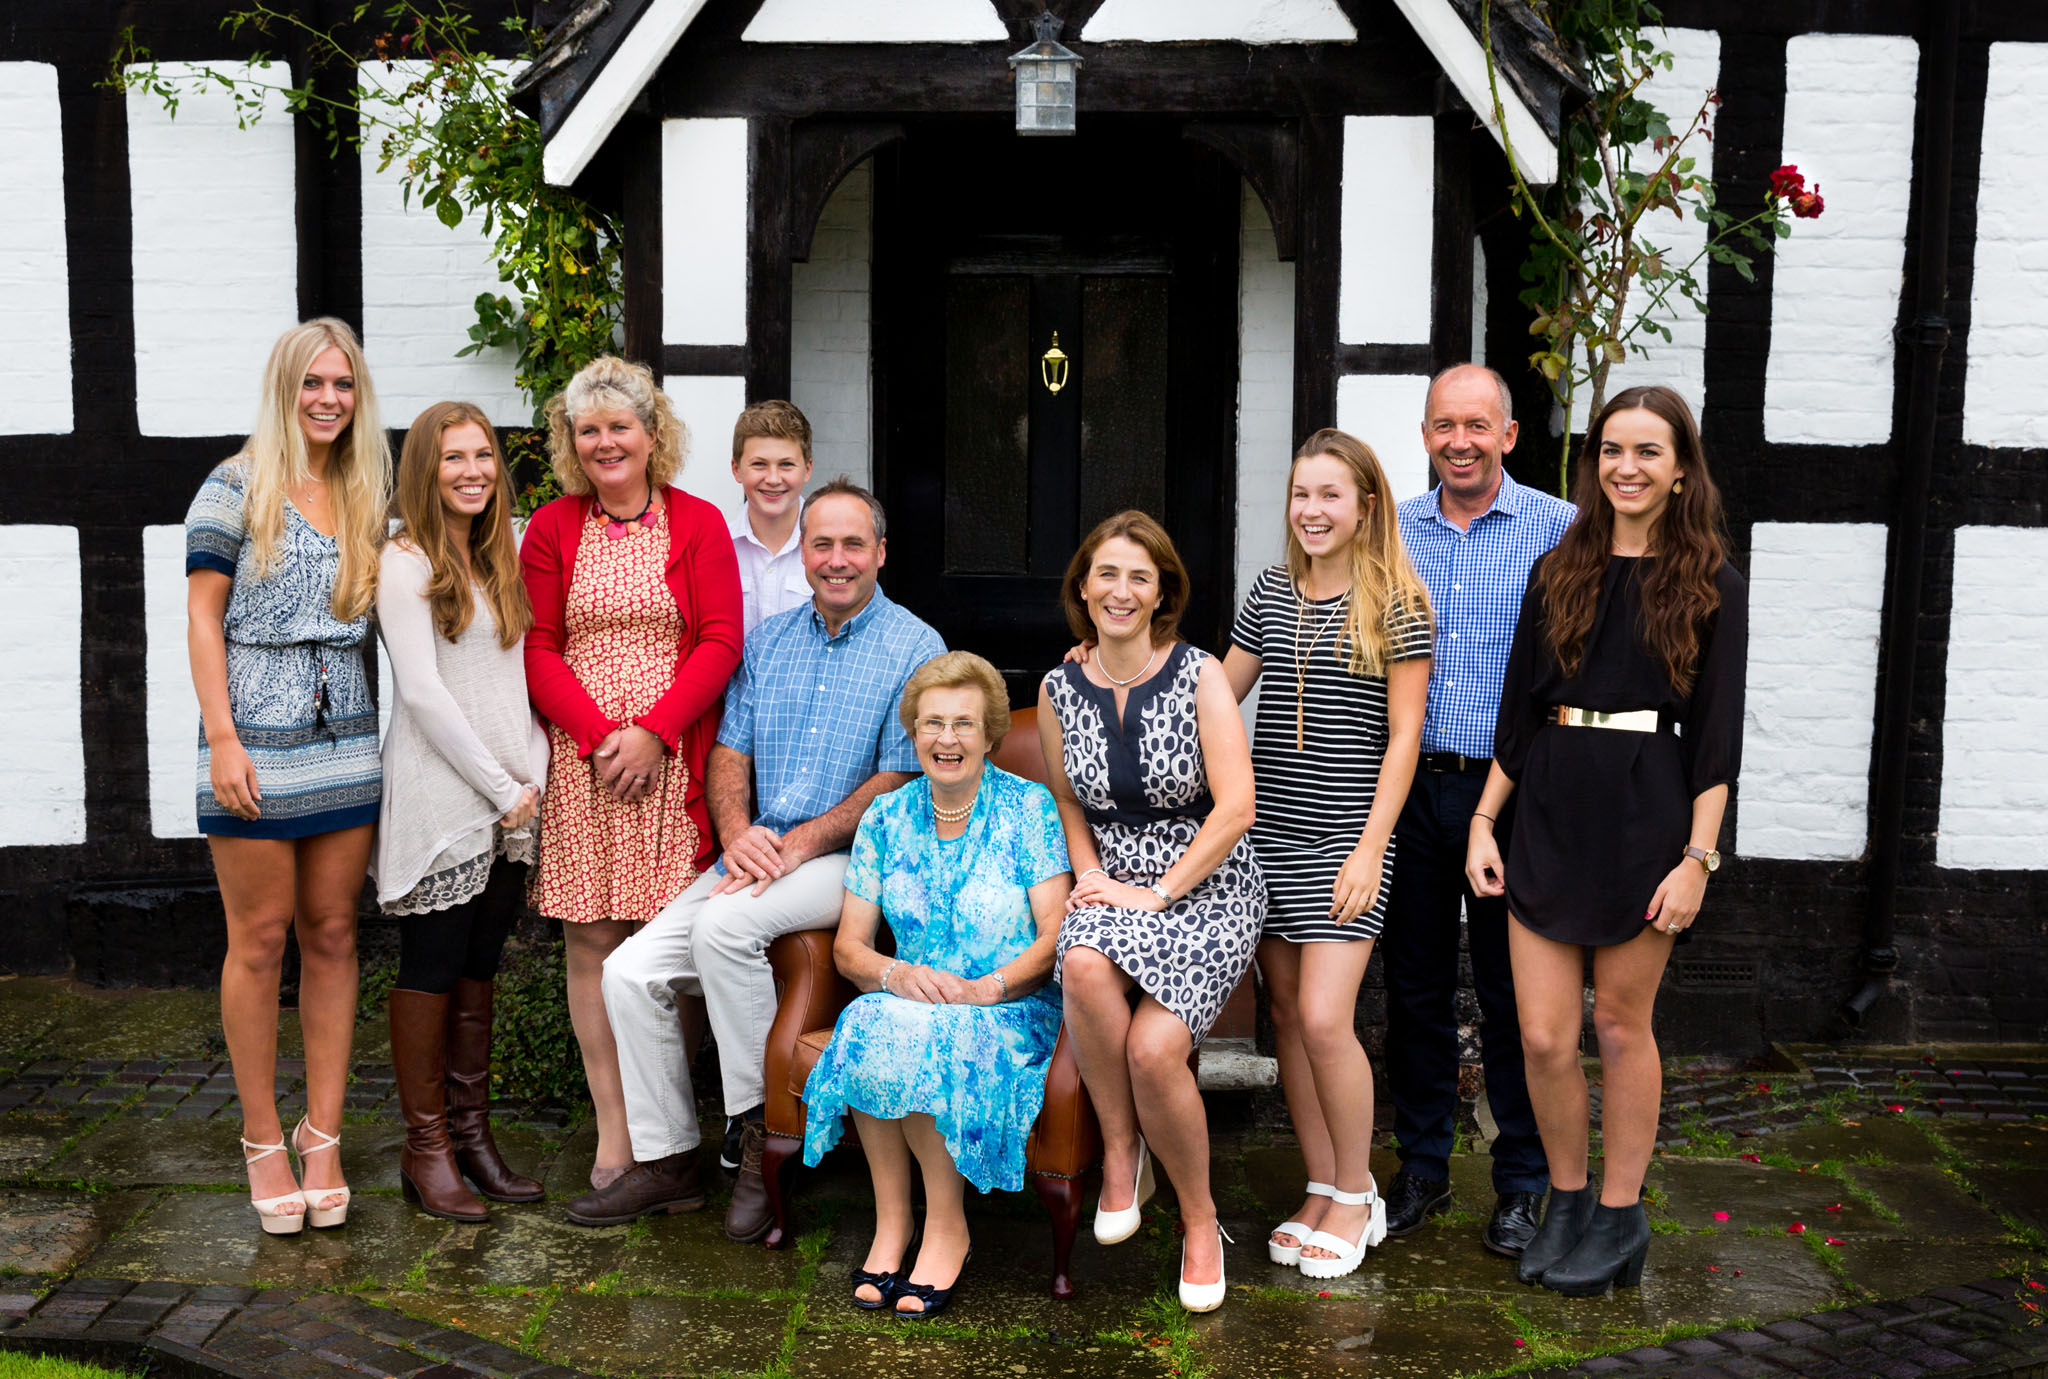 A family portrait photograph in Holmes Chapel, Cheshire to mark an 80th birthday.